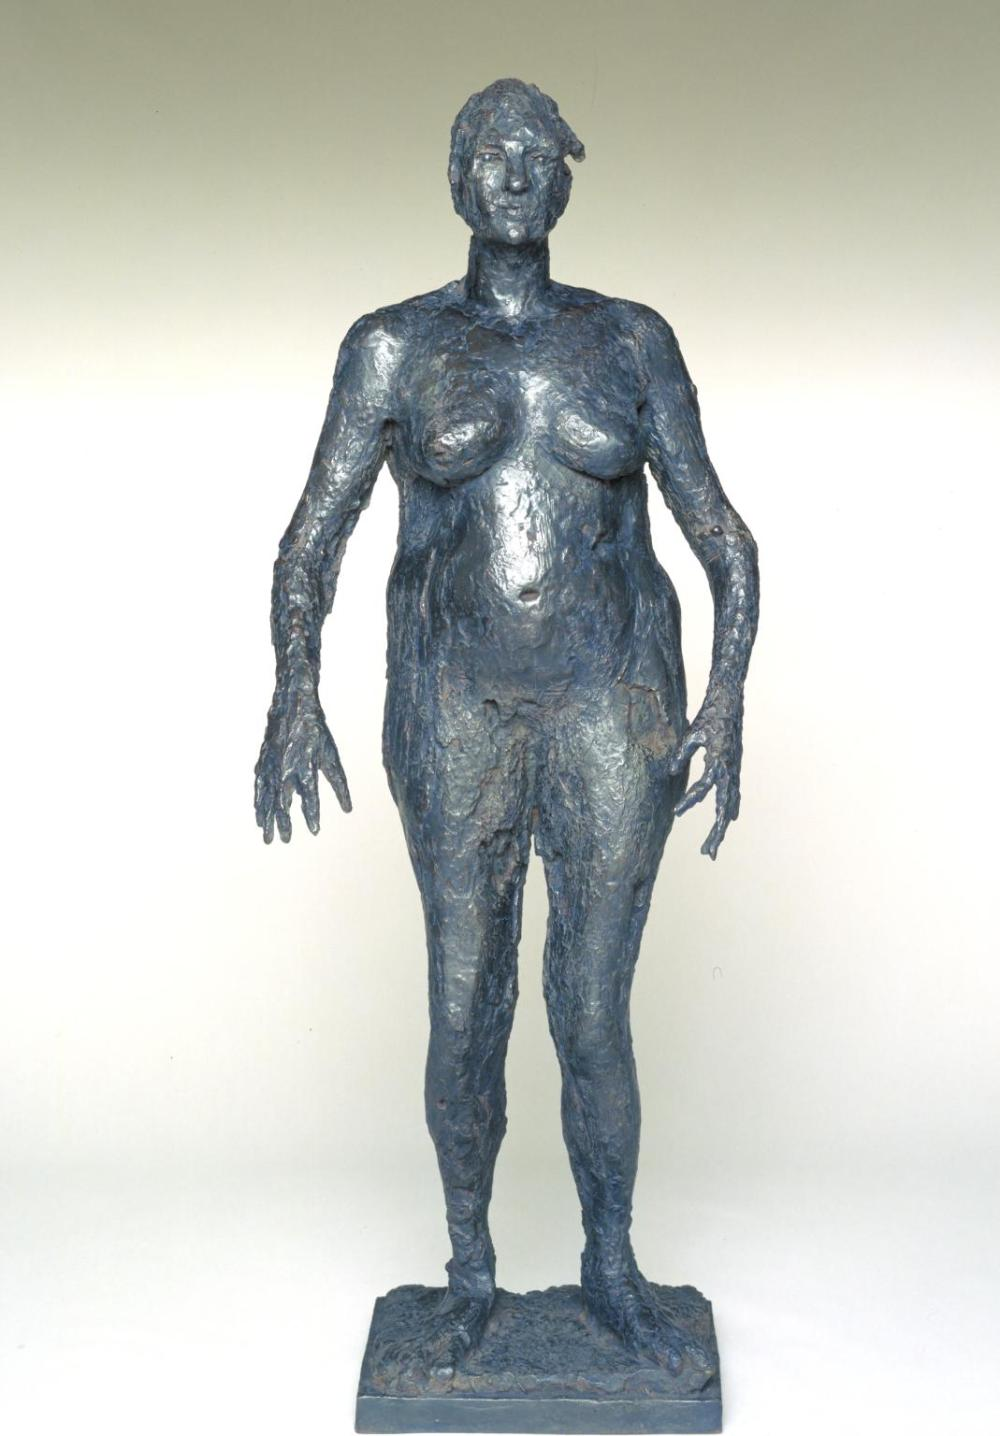 Hurricane Woman 1948-9, cast 1995 by Germaine Richier 1902-1959